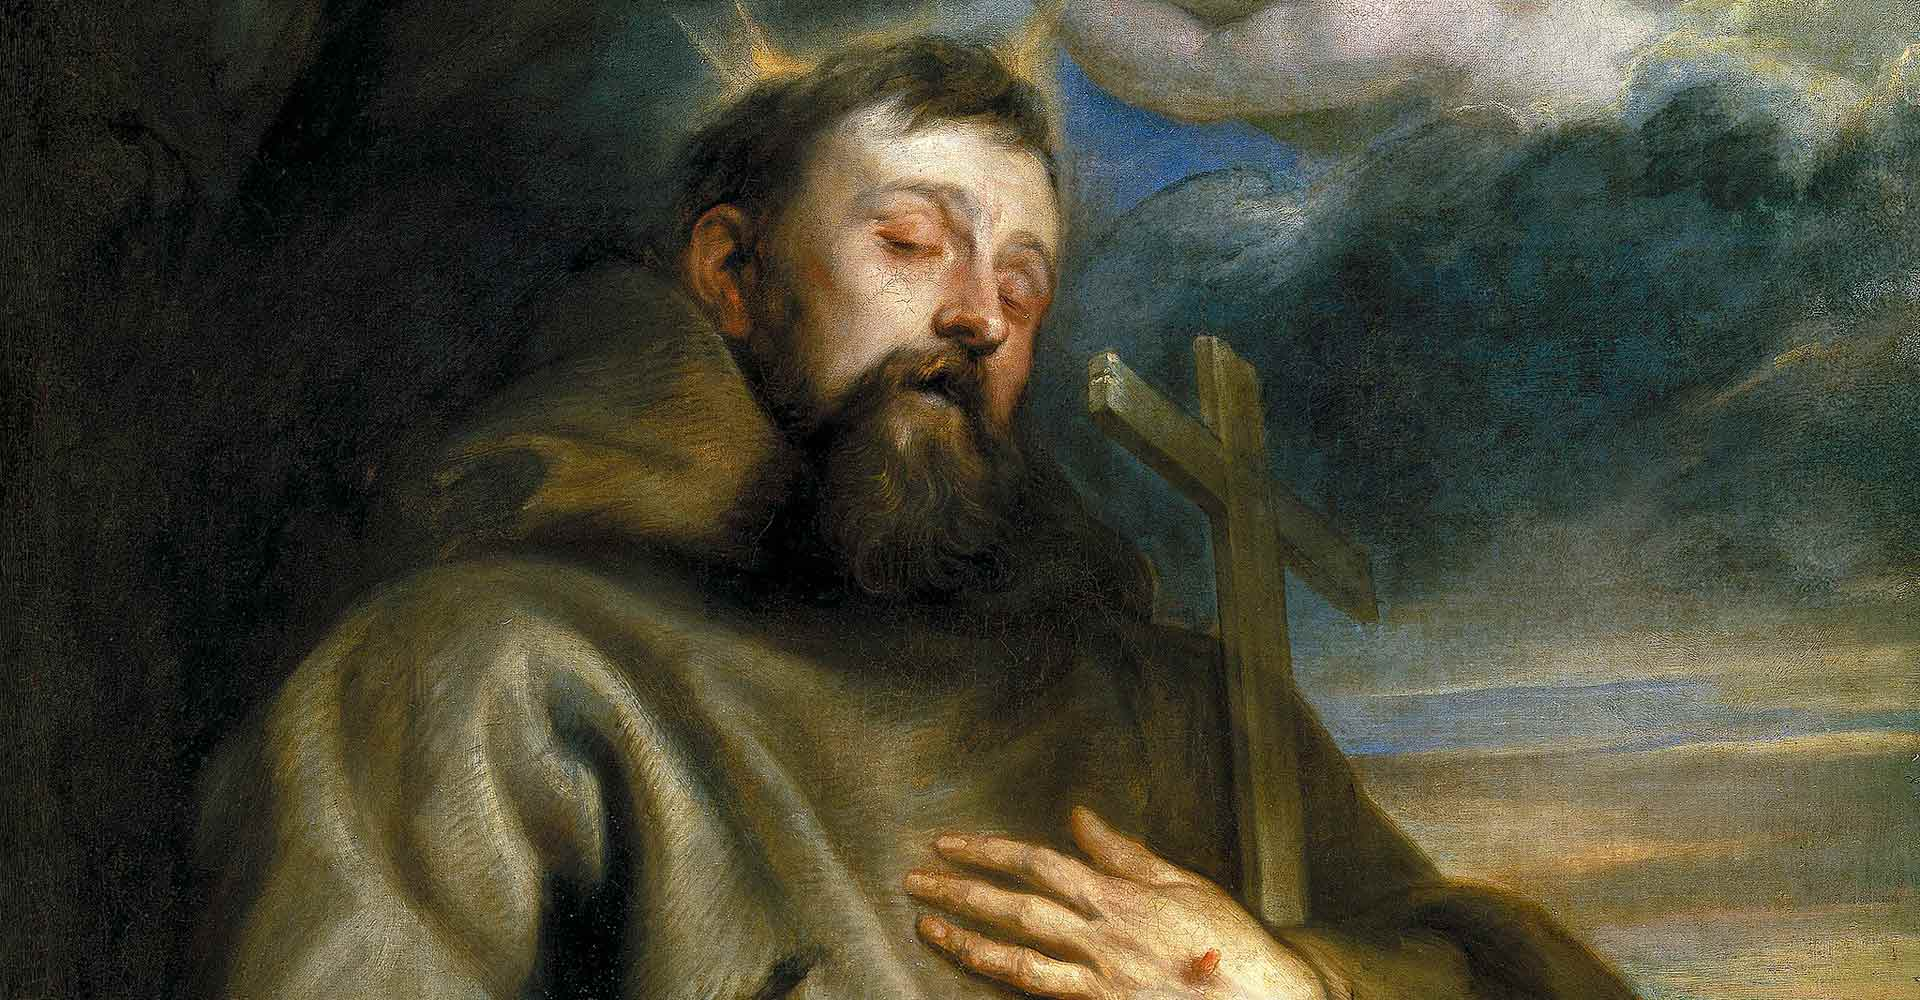 Today, you can get this St. Francis-themed indulgence